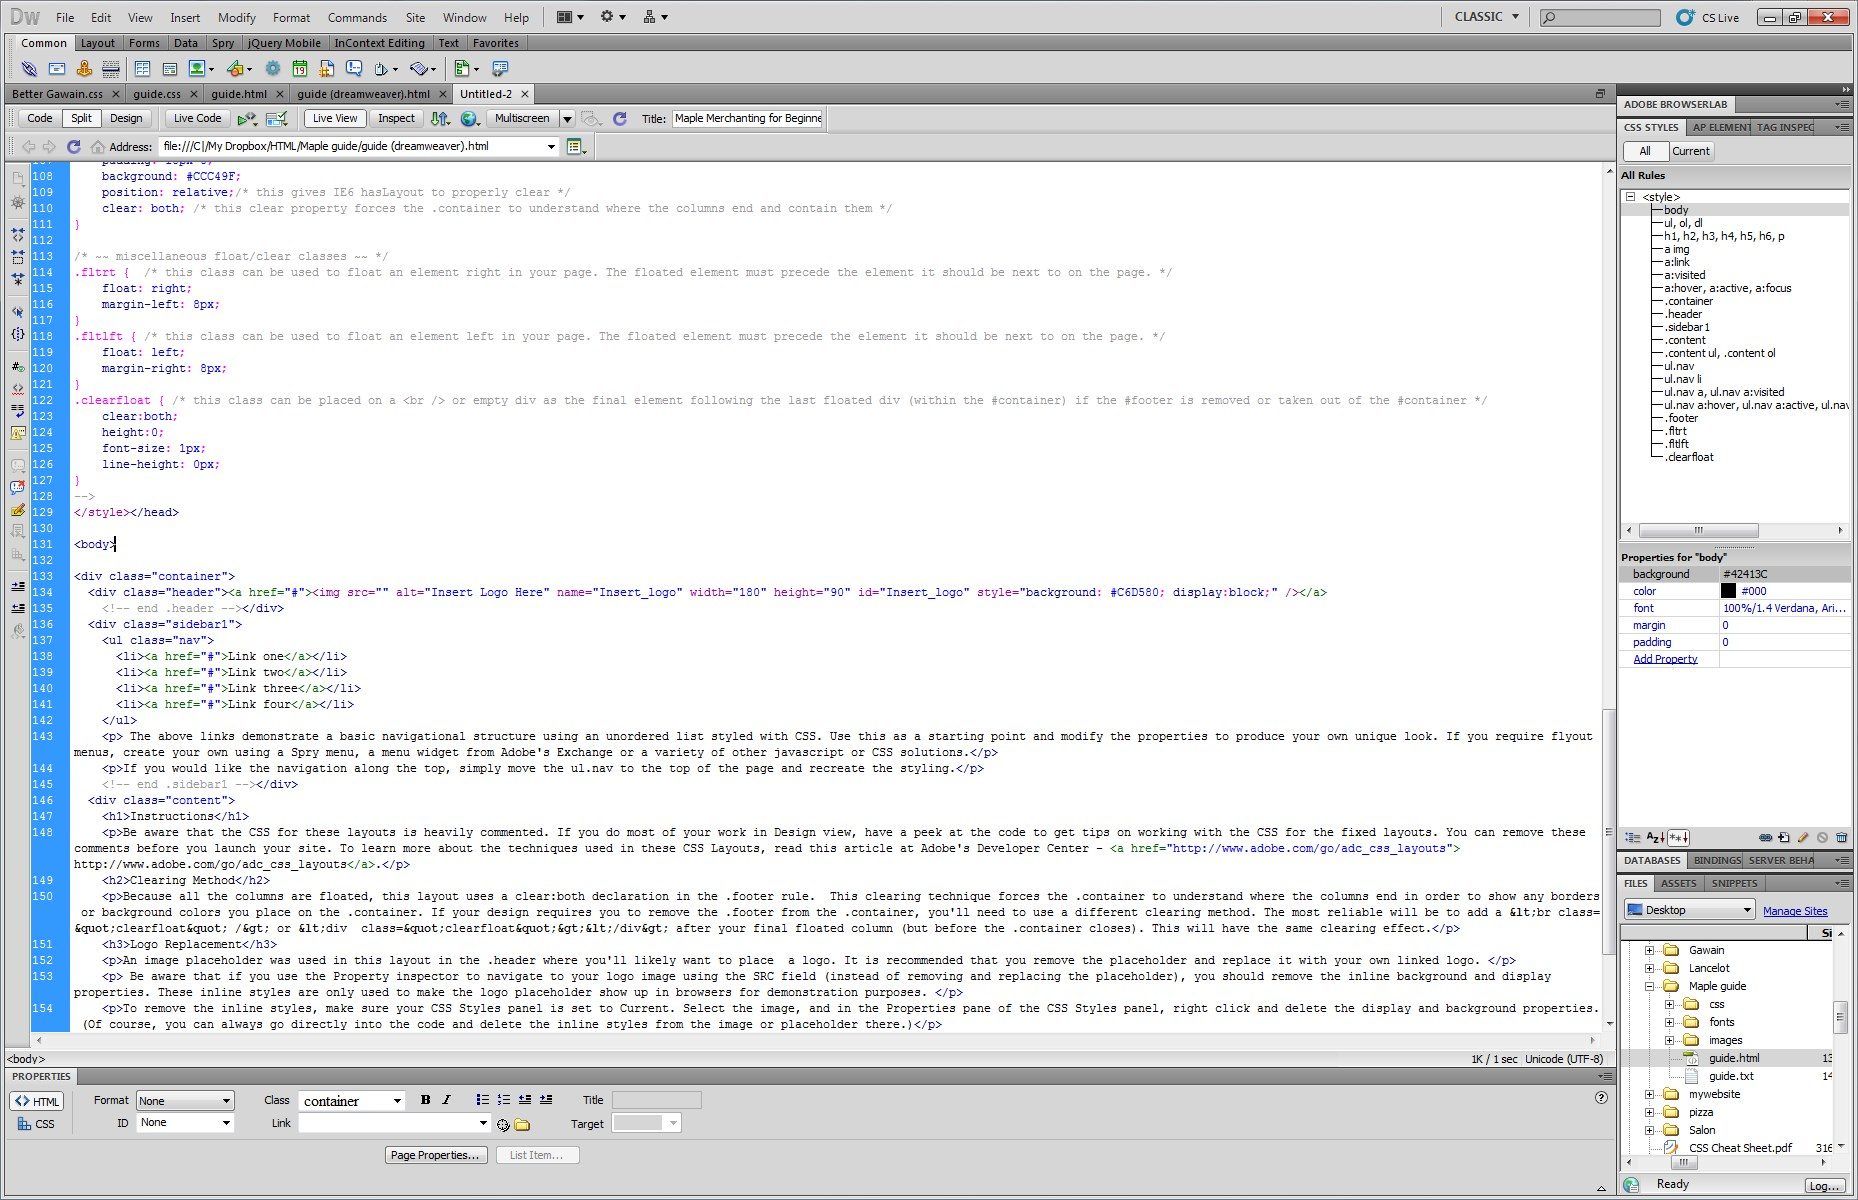 Adobe Dreamweaver screenshot 1